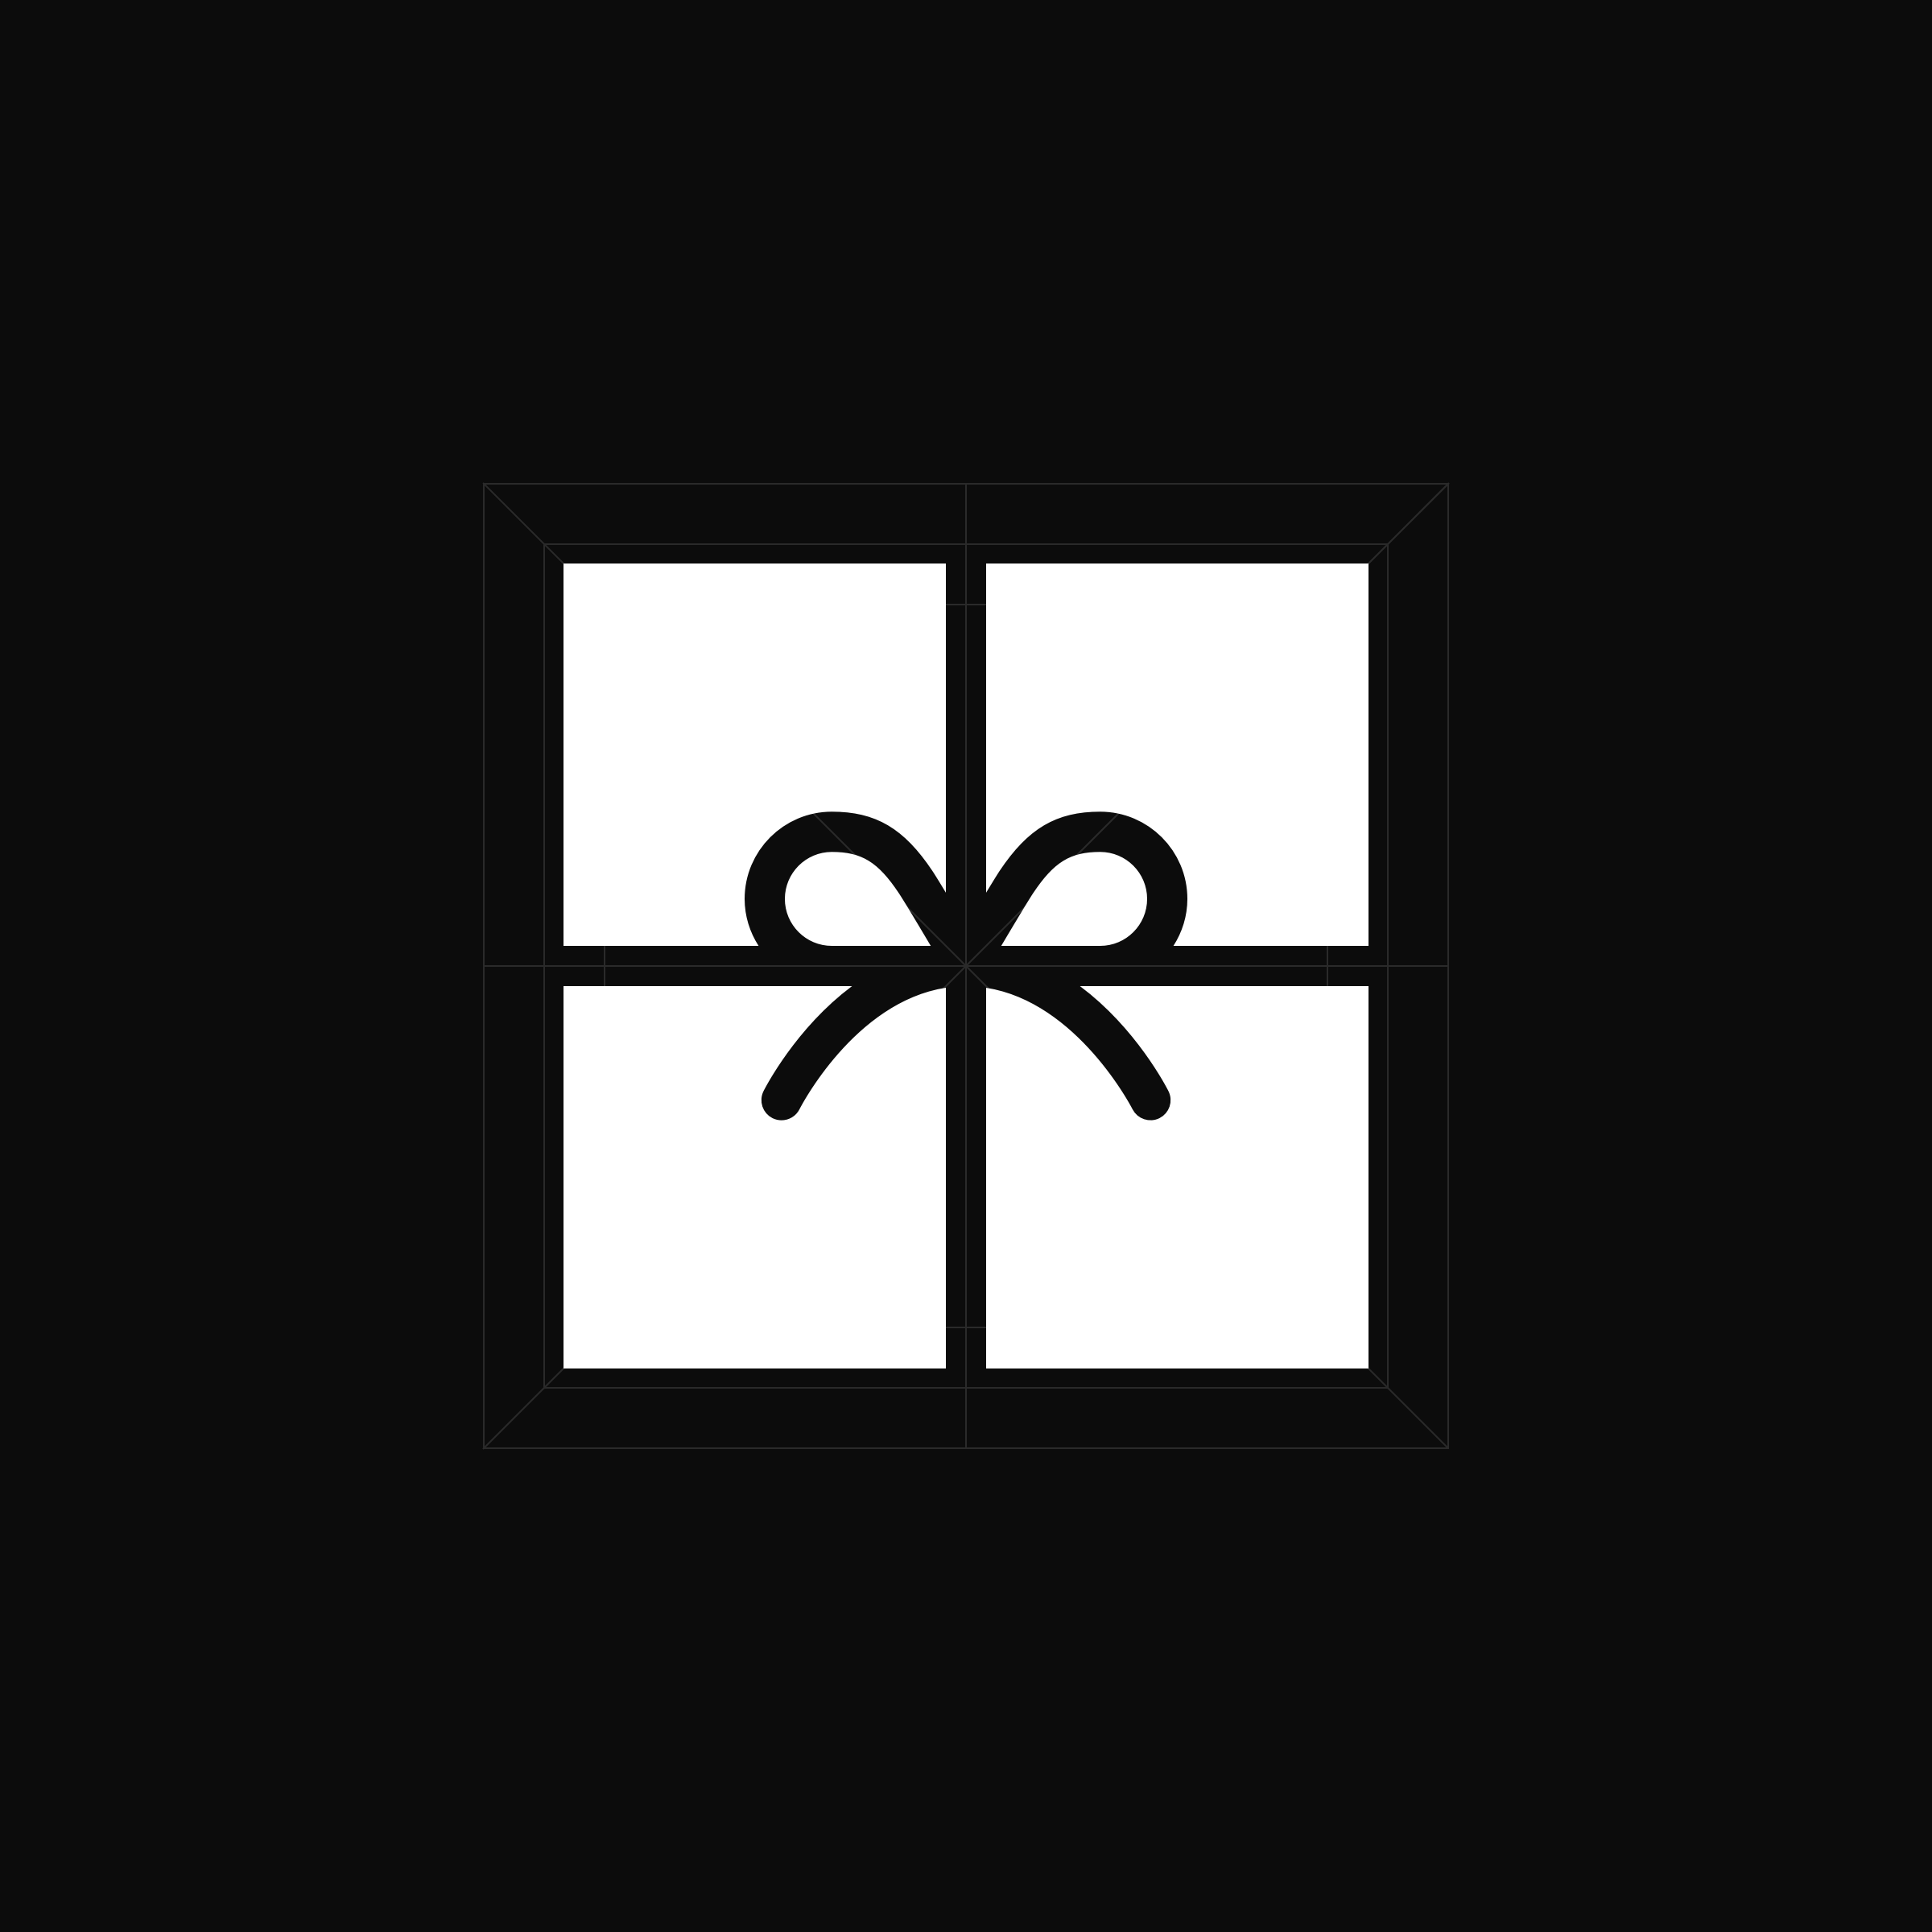 vzy-icon-gift-solid